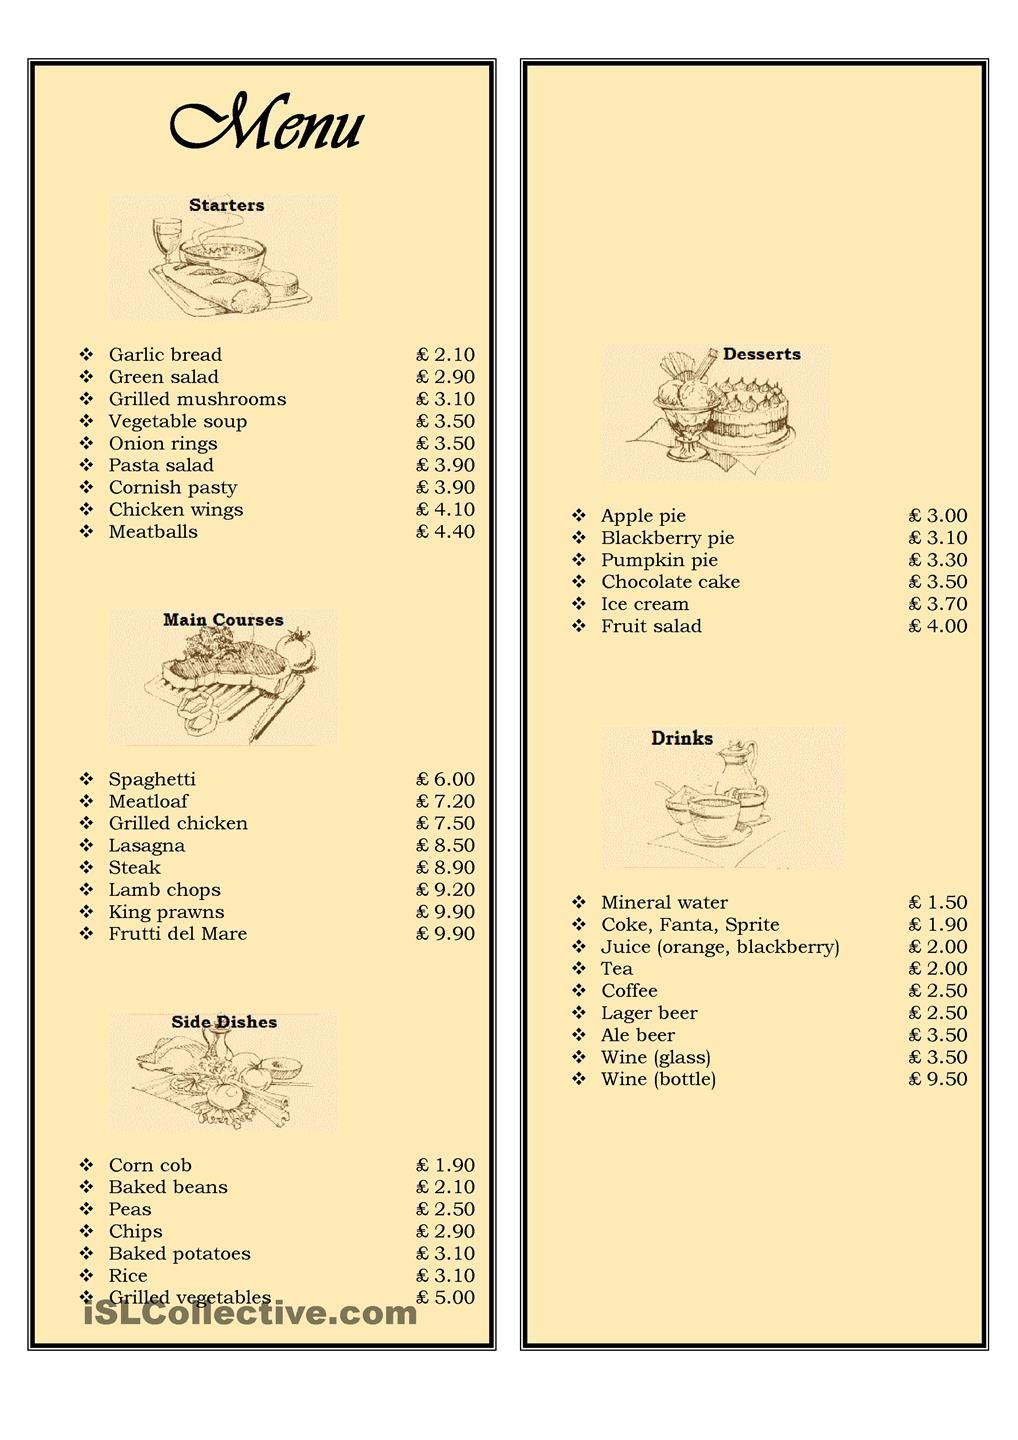 menu in a restaurant ordering food every teacher